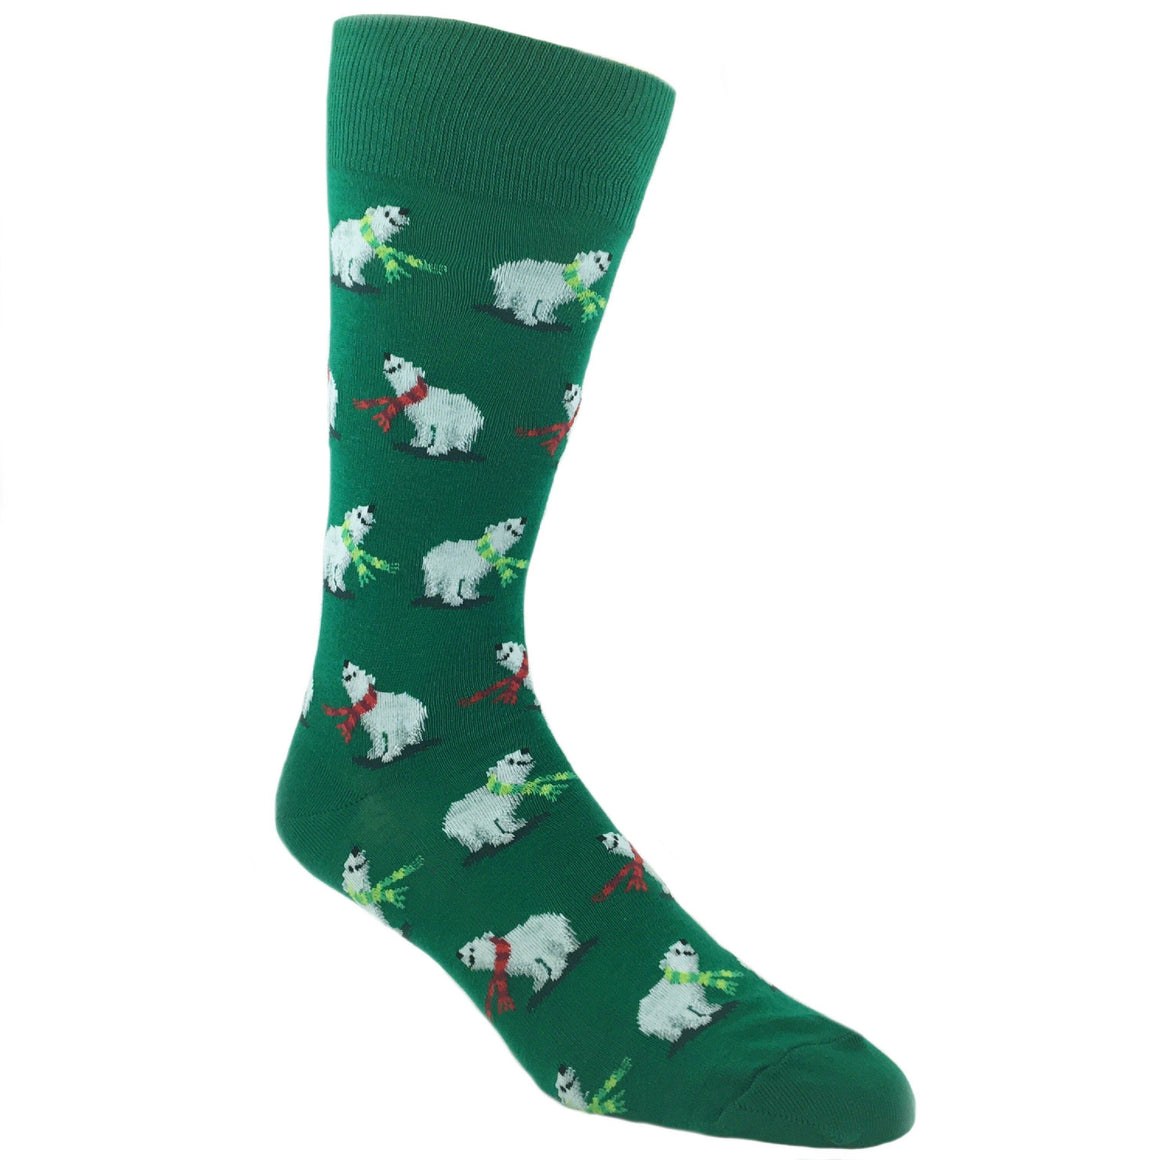 Polar Bears Christmas Socks in Green by Hot Sox